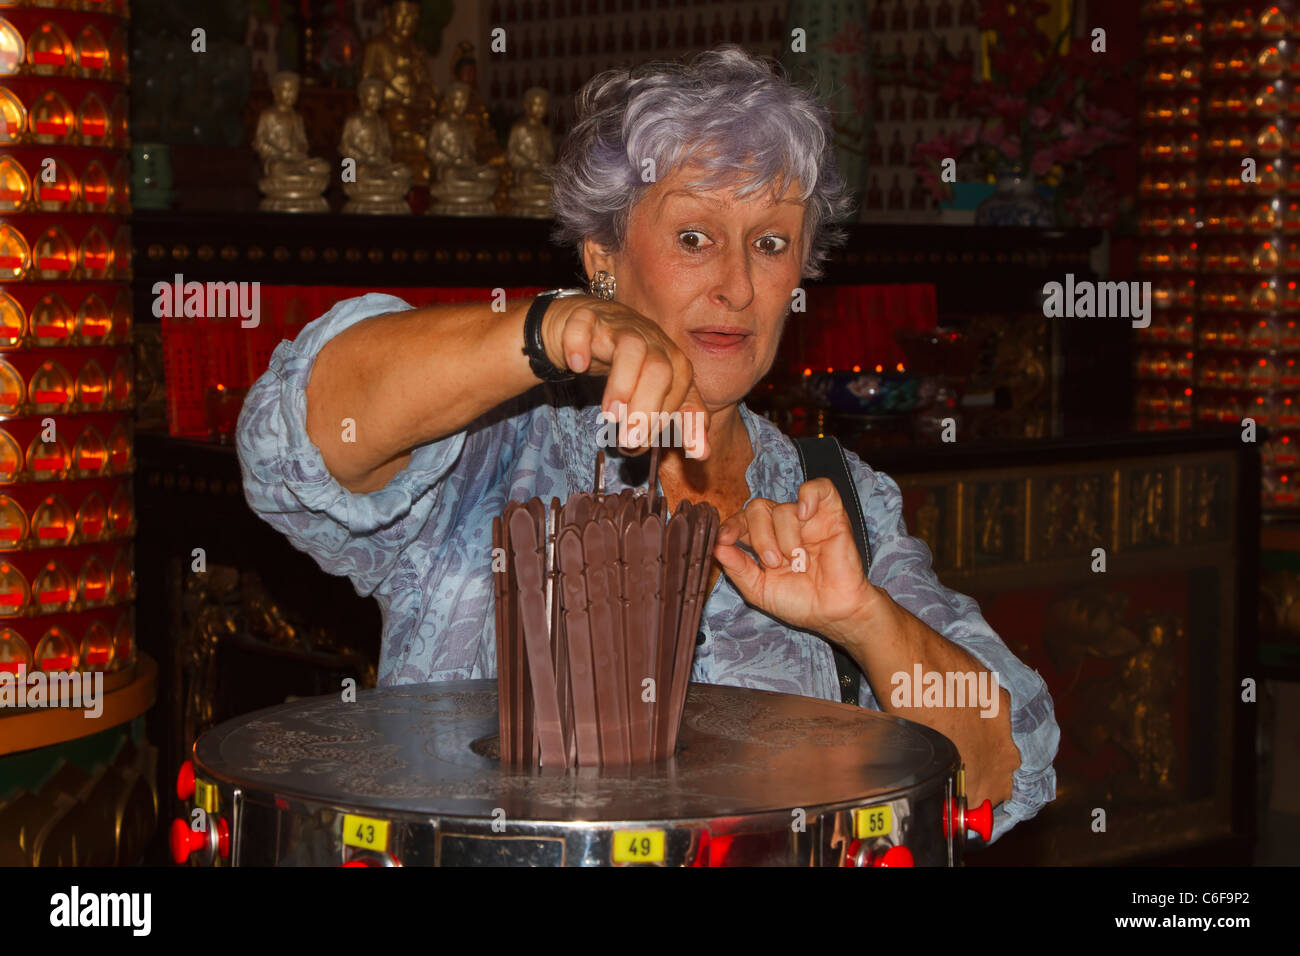 An elderly woman using the Kau Cim, fortune telling sticks in the Chinese Thean Hou Temple, Kuala Lumpur, Malaysia. - Stock Image